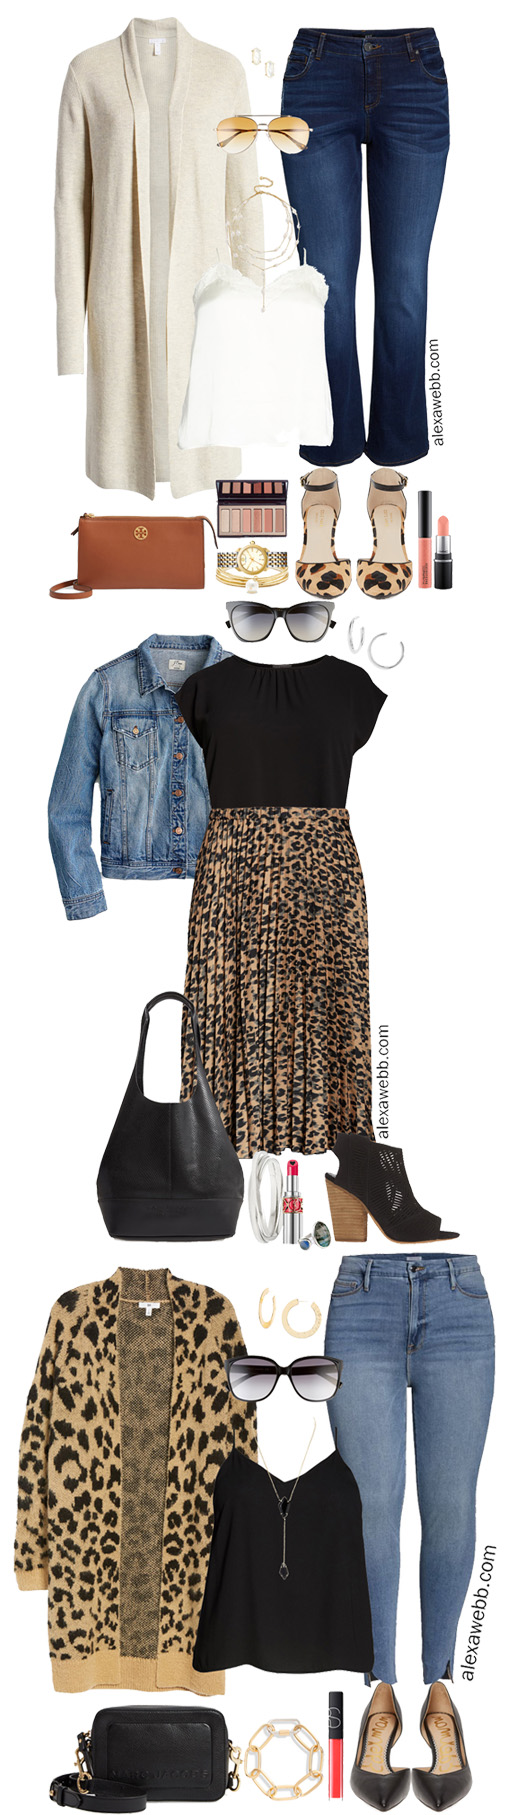 Nordstrom Anniversary Sale 2019 – Plus Size Outfits - Plus Size Leopard Cardigan, Good American Skinny Jeans, Camisole, Pumps, Crossbody Bag - Plus Size Fashion for Women - alexawebb.com #plussize #alexawebb